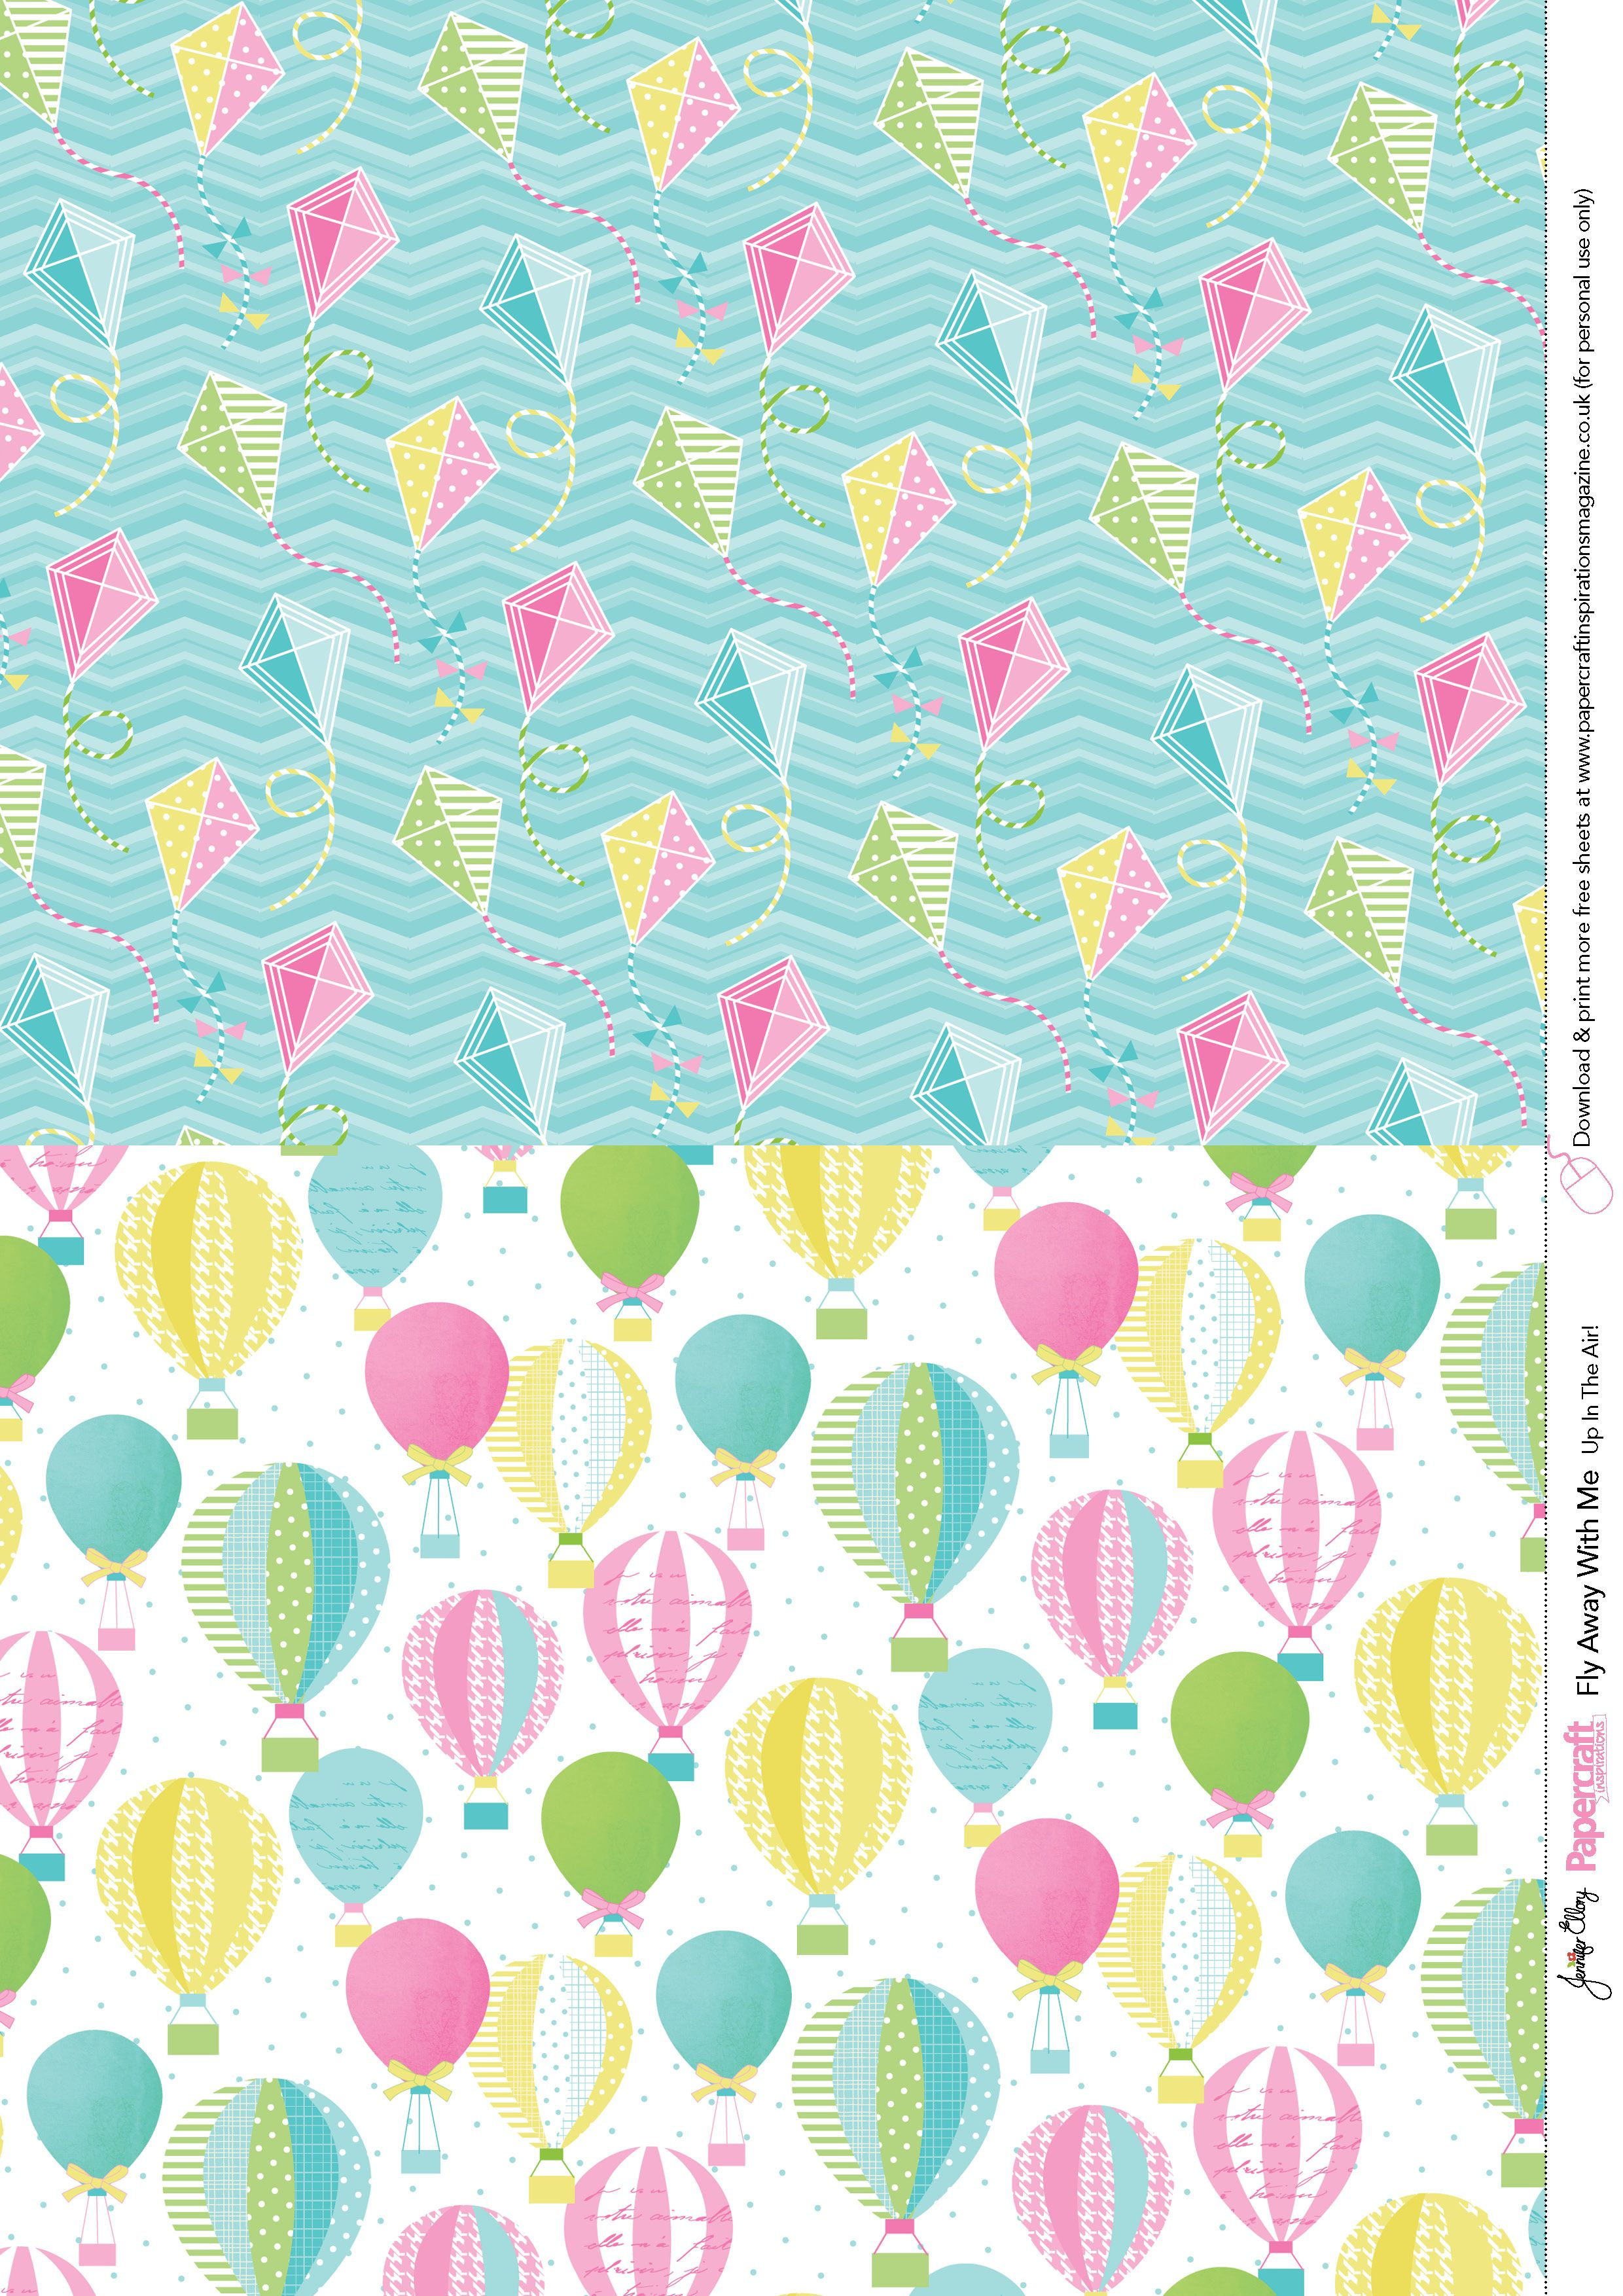 Fly Away With Me Free Printables From Papercraft Inspirations 138 - Free Printable Pattern Paper Sheets